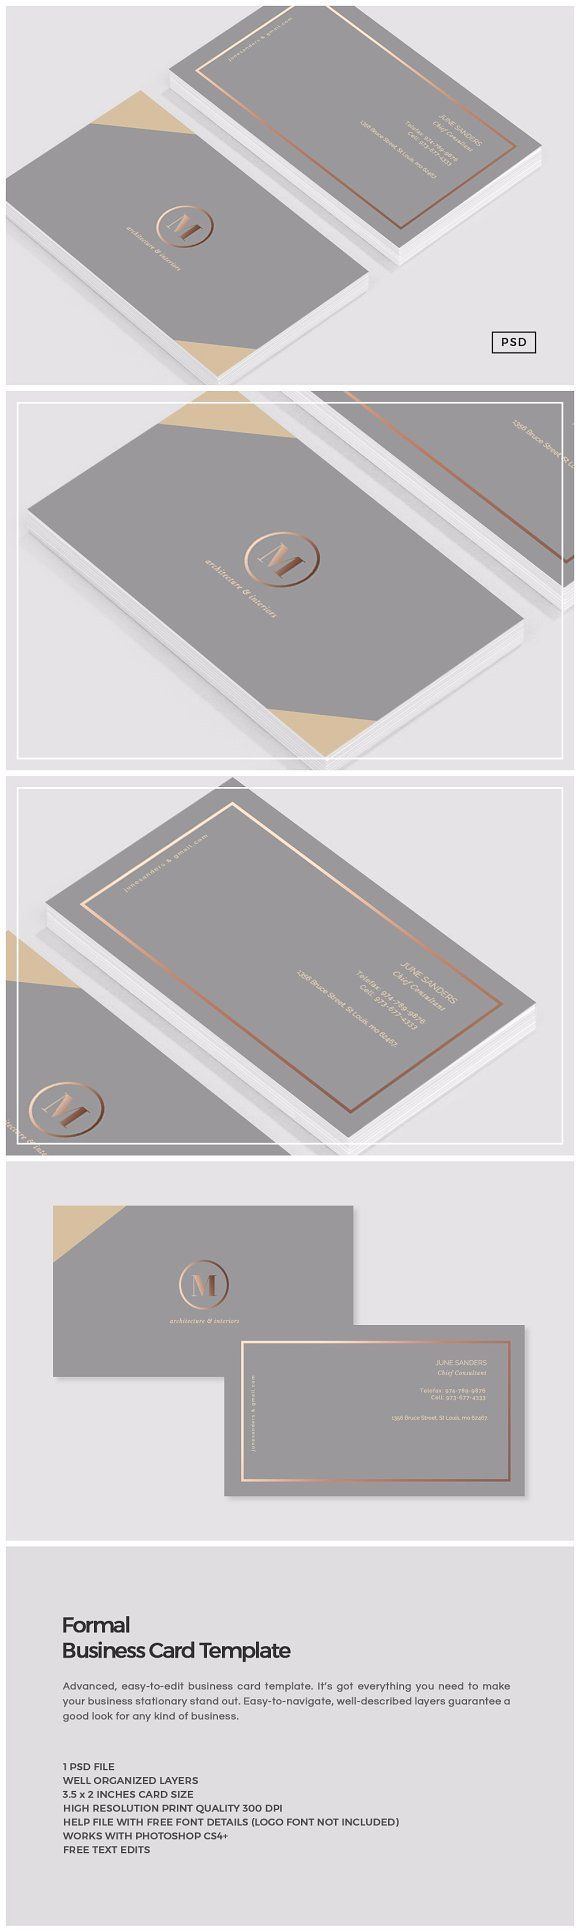 Formal Business Card Template by The Design Label on @creativemarket